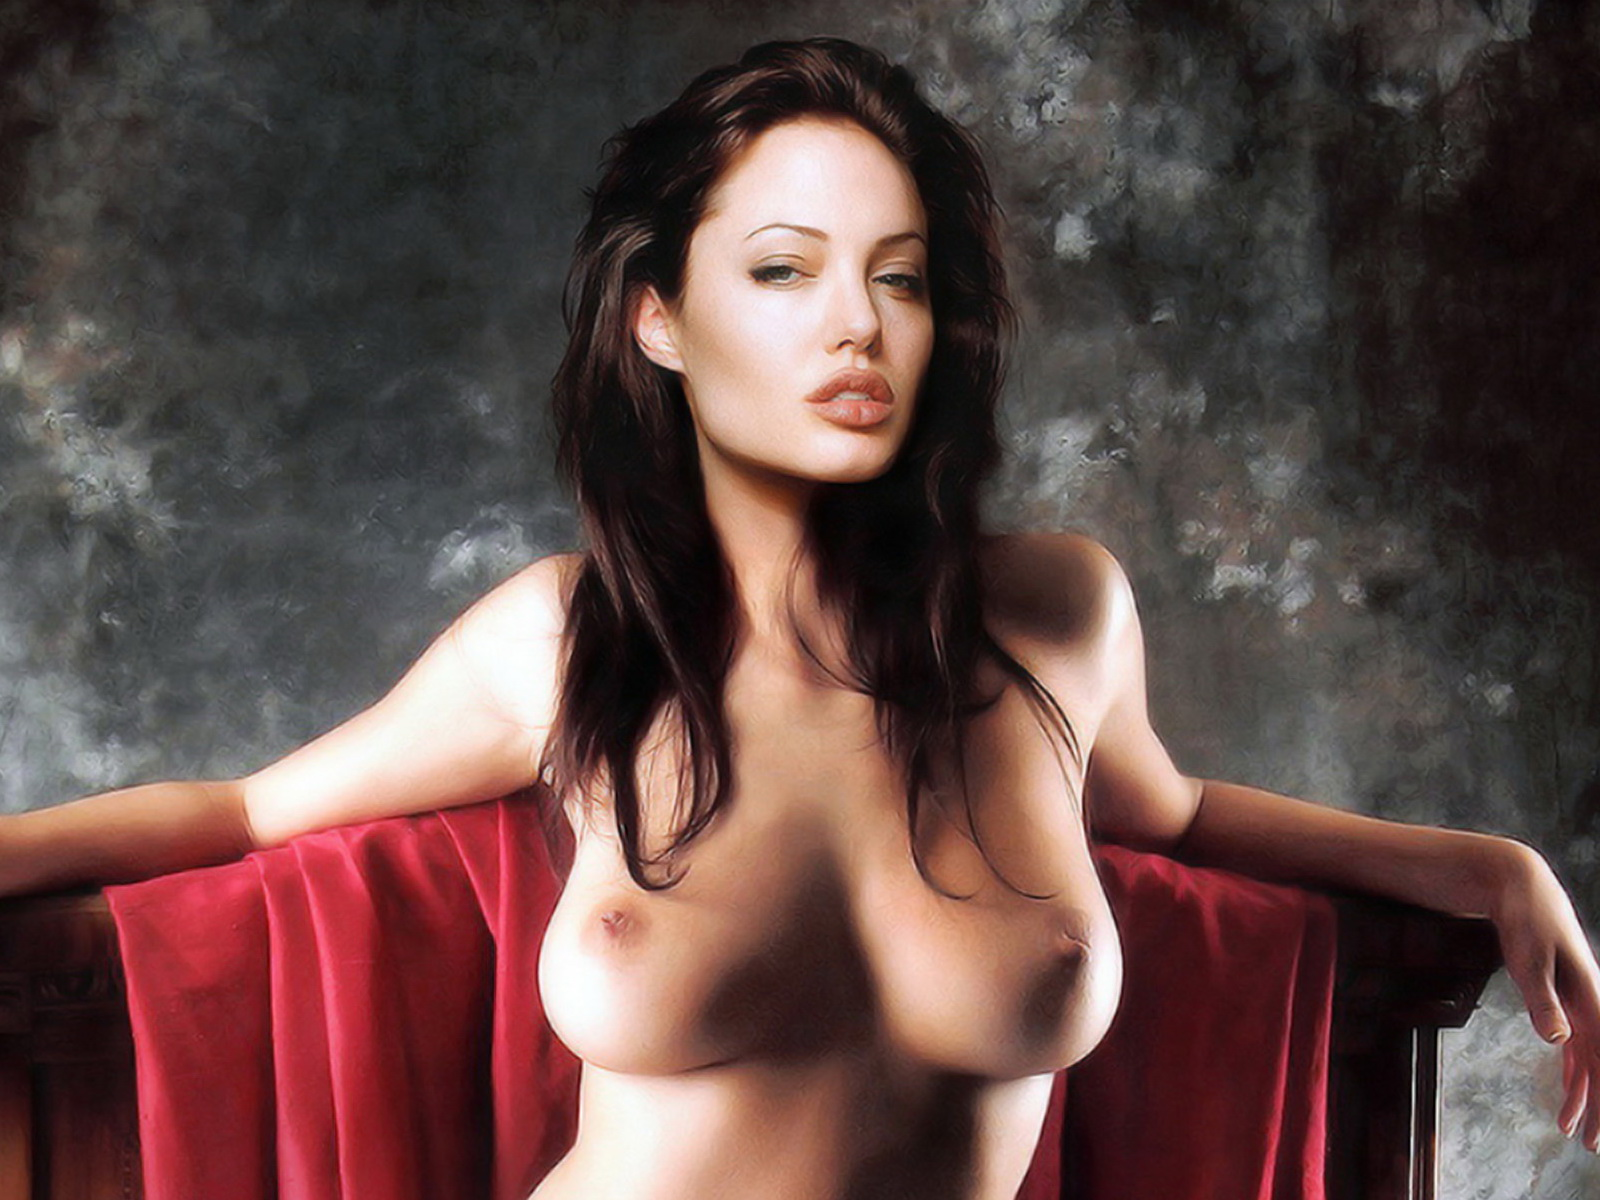 Angelina Jolie Topless Photo Expected To Fetch 50000 At Auction